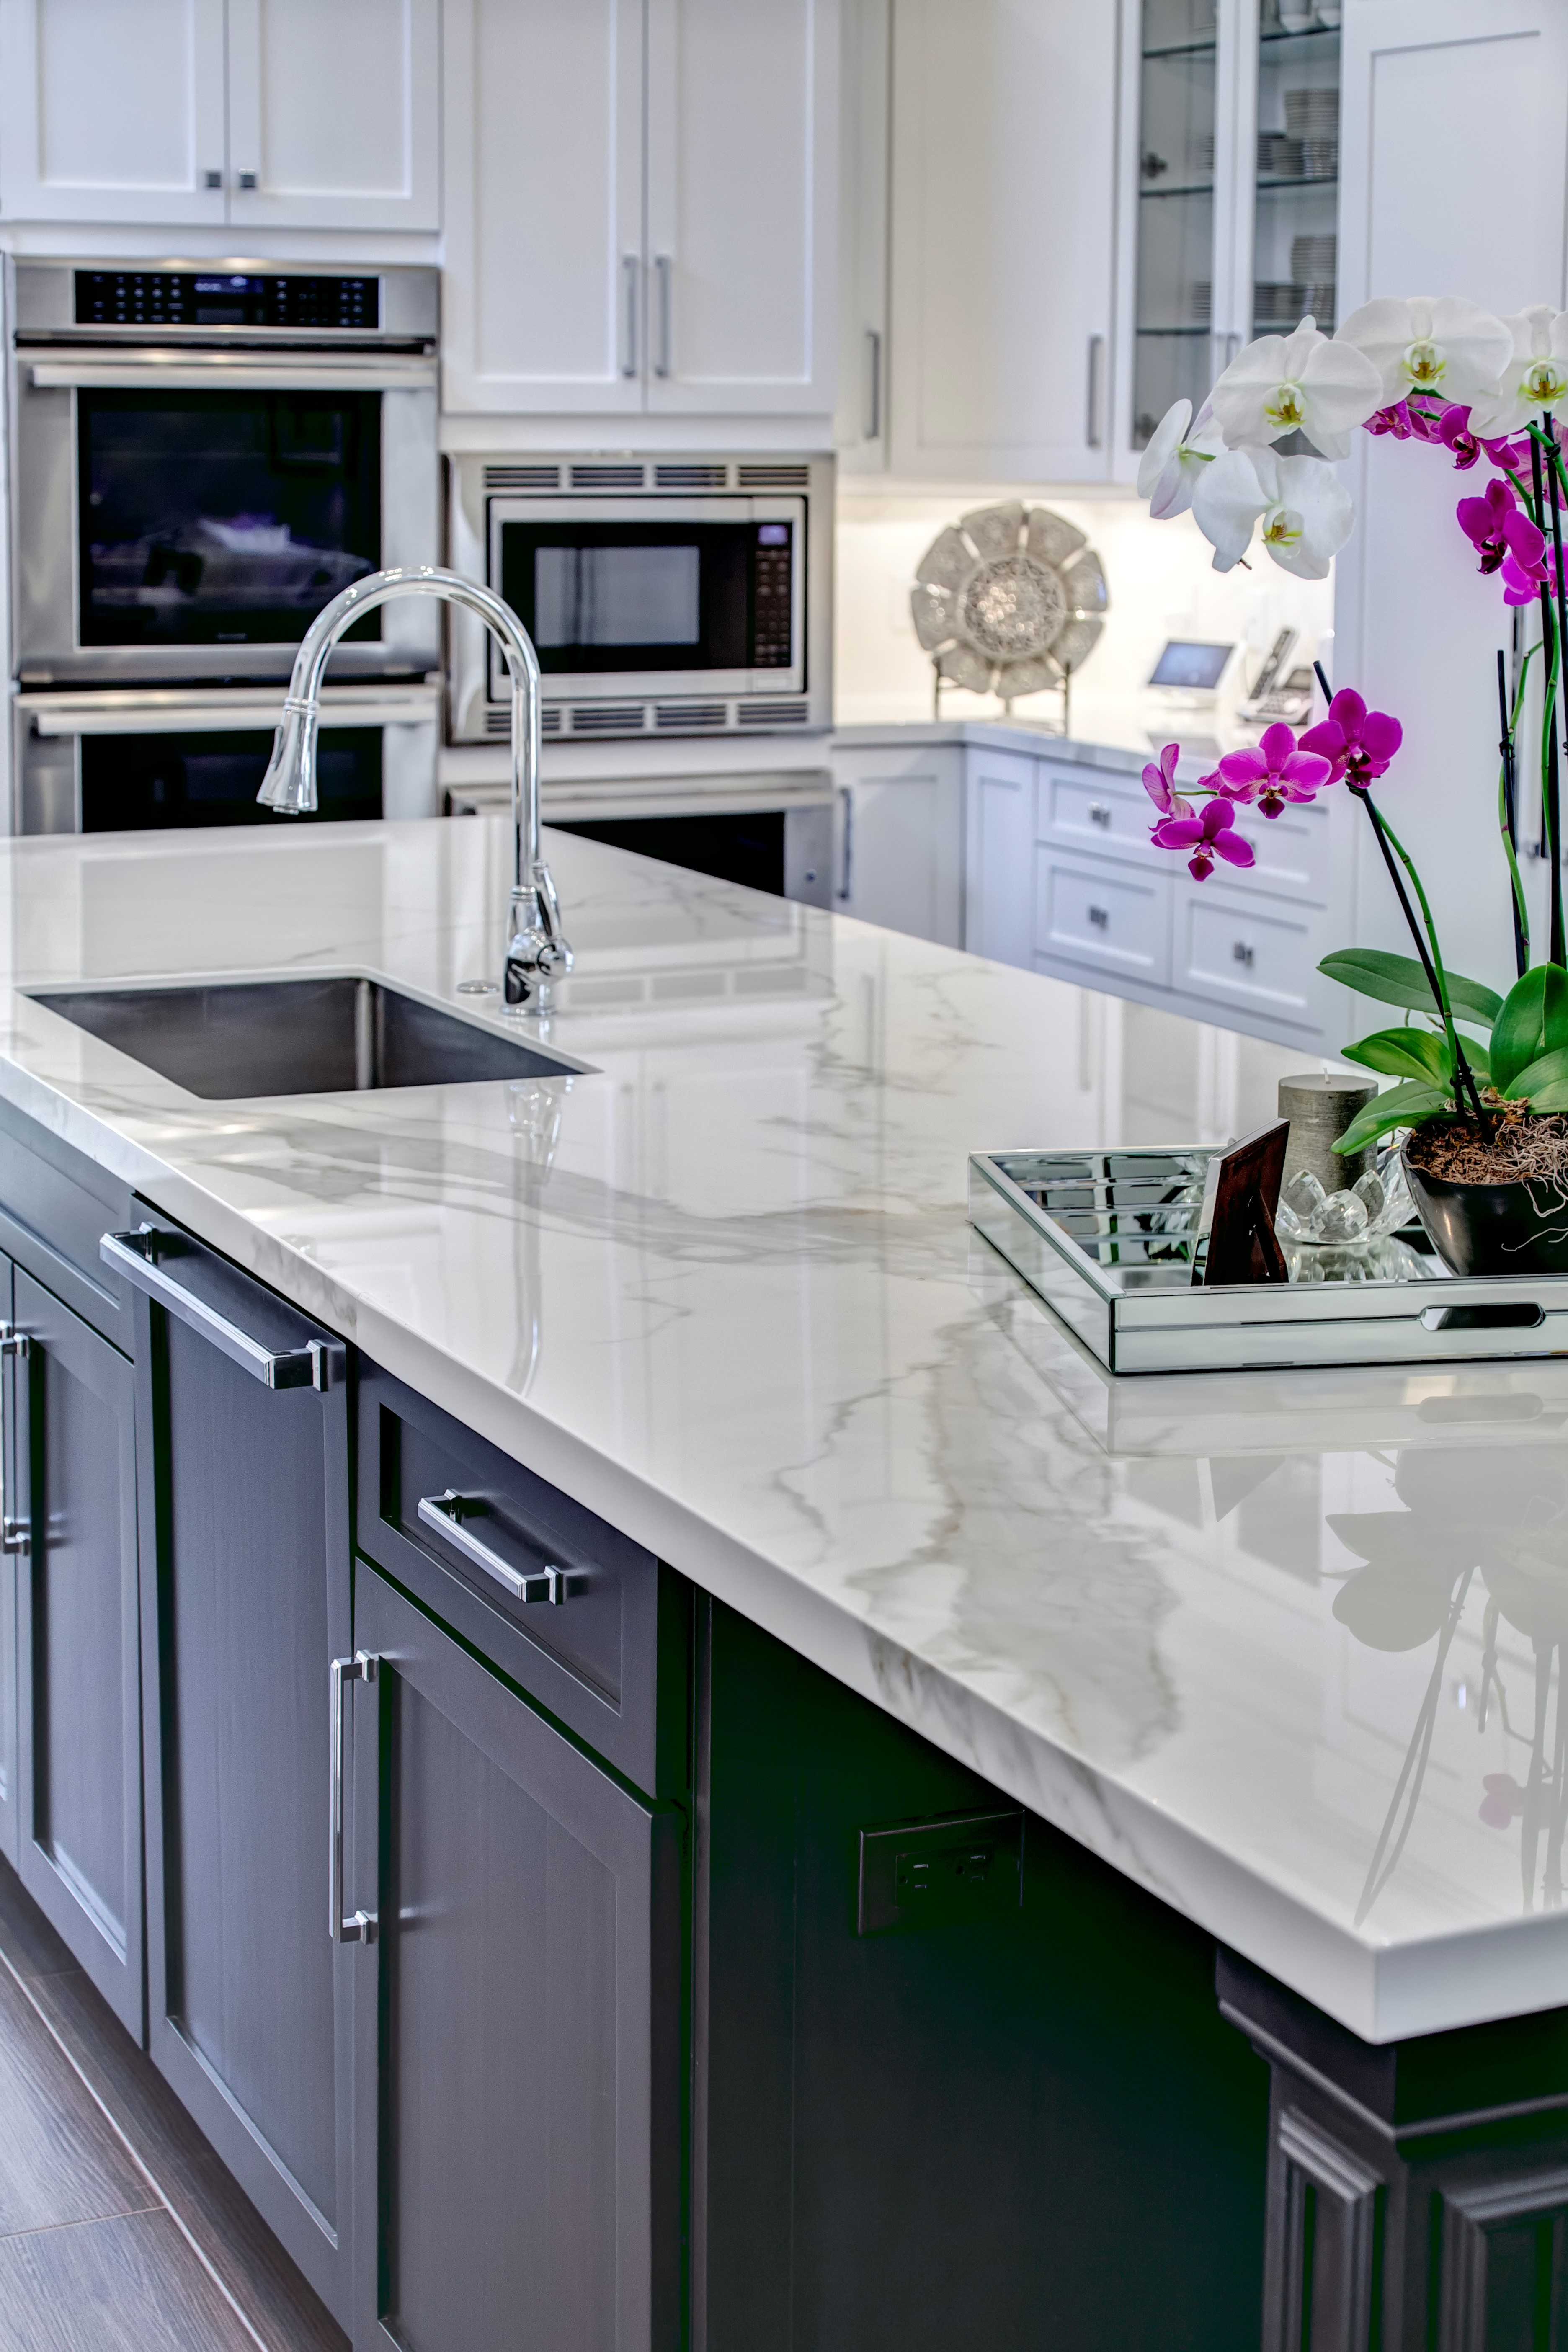 Charmant Kitchen Countertops In Neolith Estatuario Polished Finish. Residential  Project Designed By Karen Press In Boca Raton, Florida. Photo Courtesy Of  Neolith.